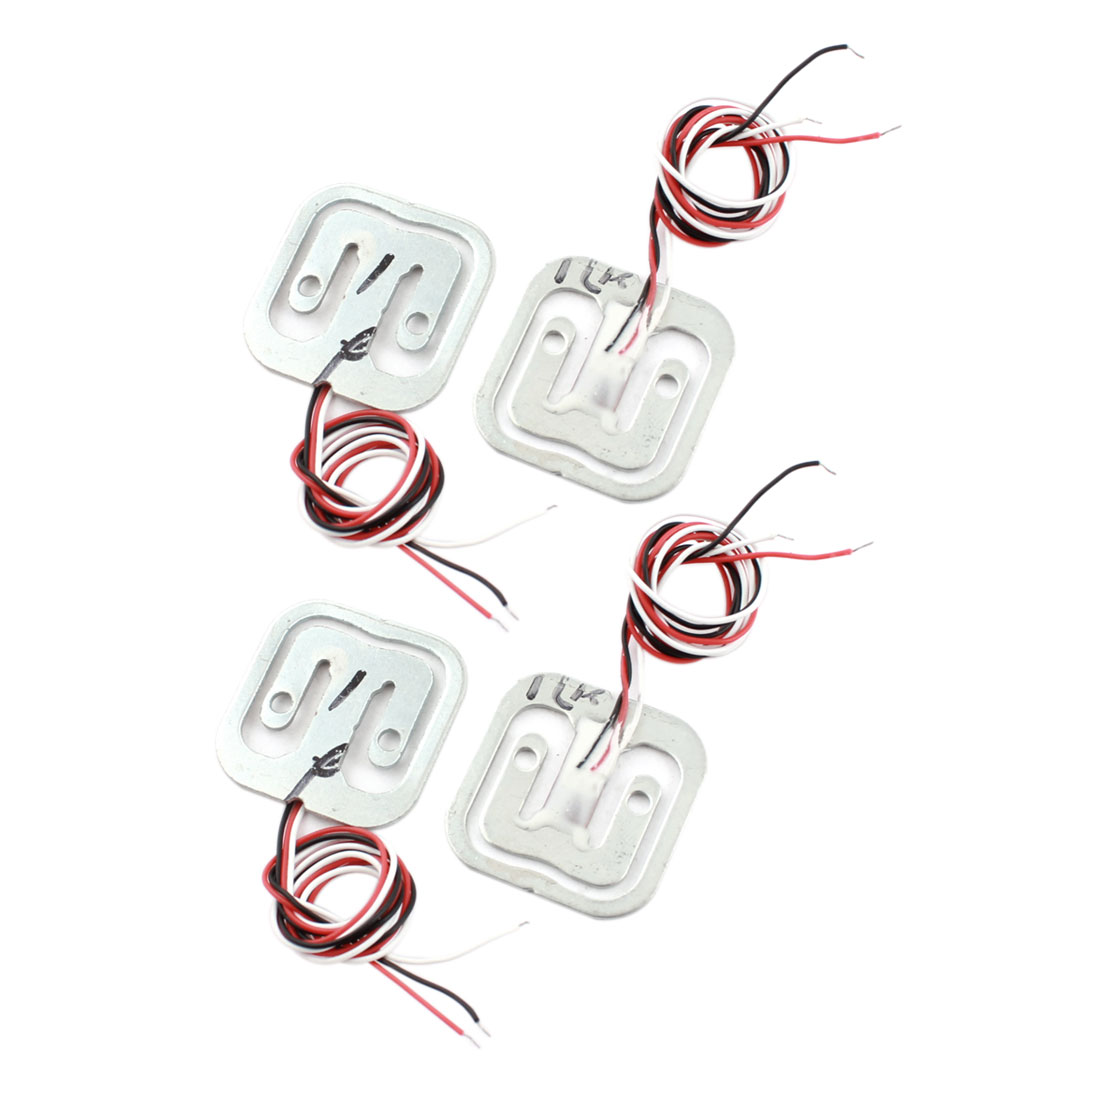 "4Pcs 4x5Kg 8"" 3-Wired Half Bridge Scale Electronic Weighing Resistance Train Sensor"